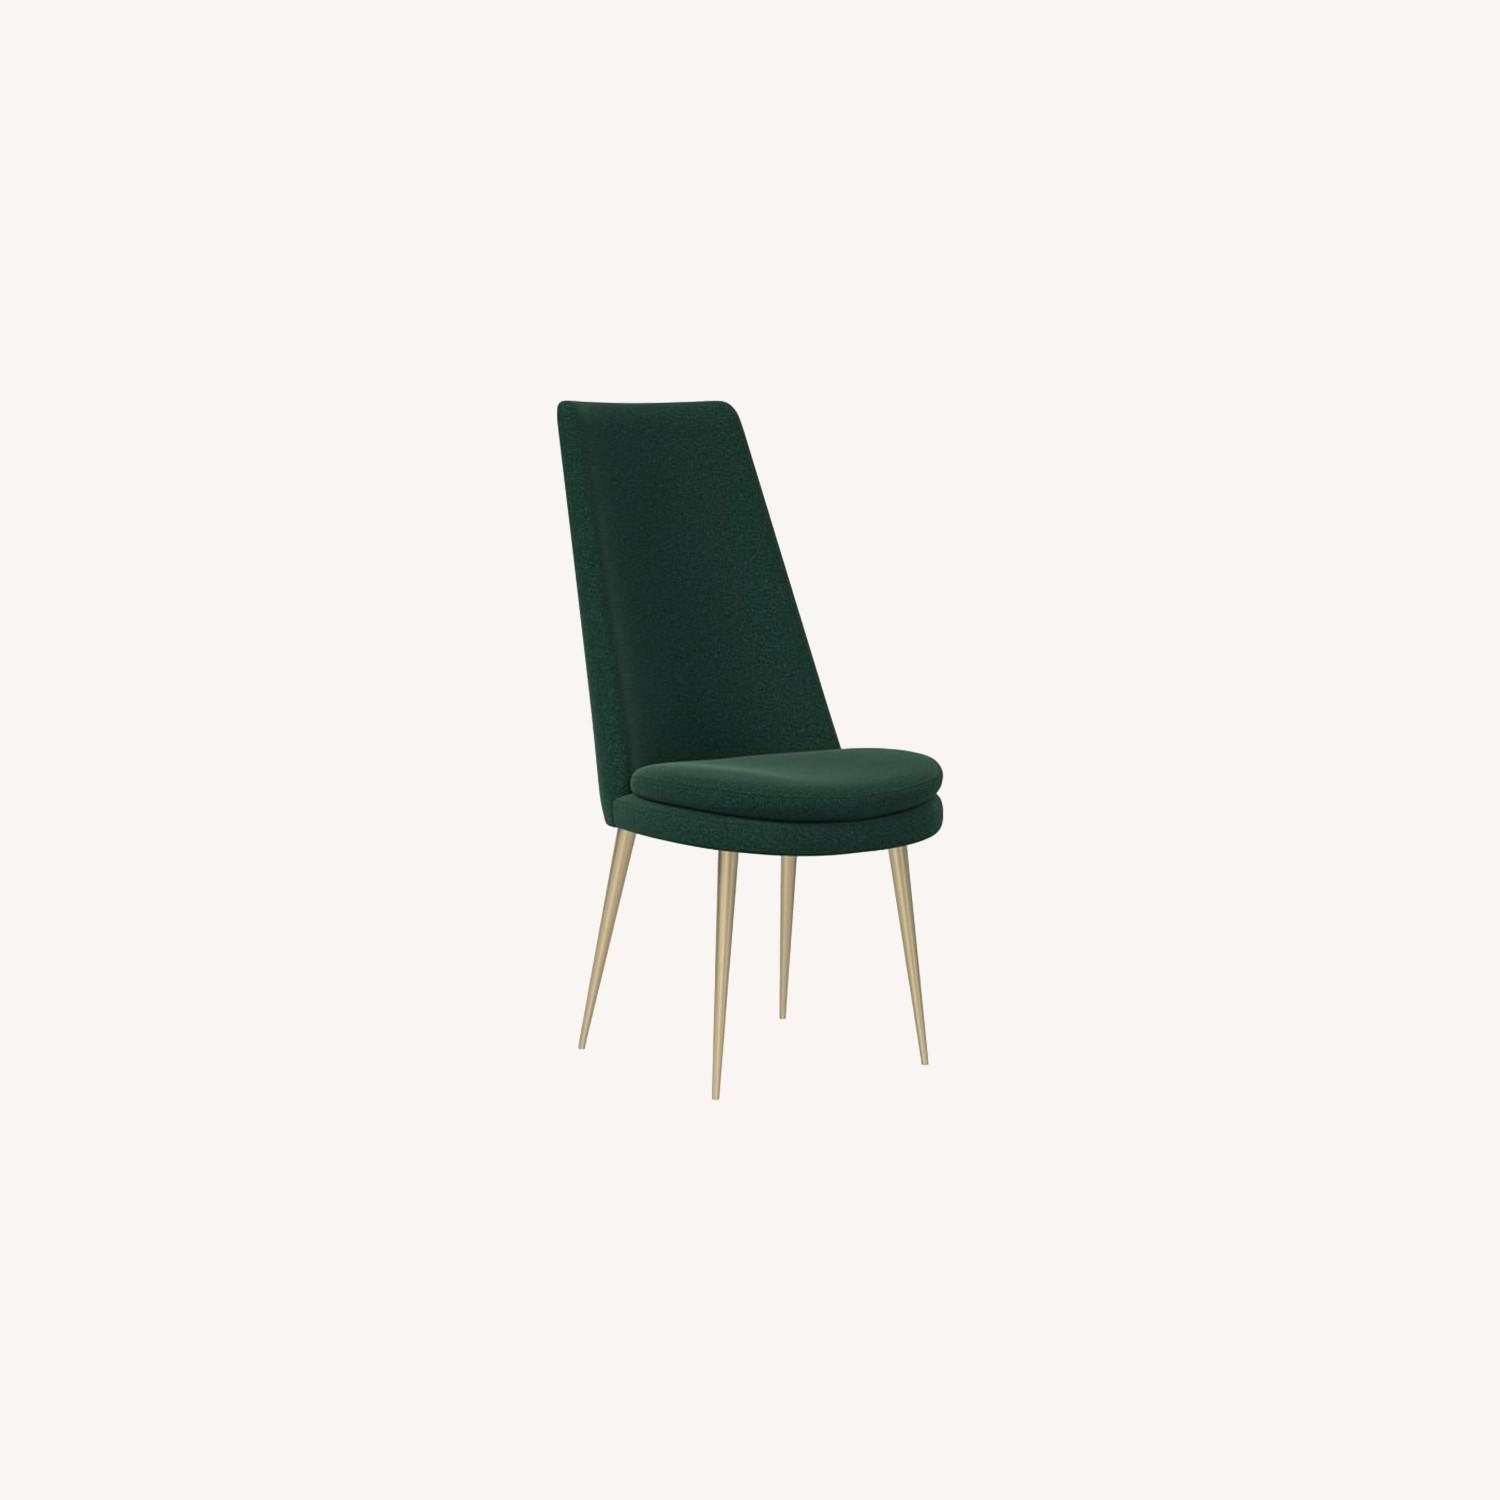 West Elm Finley High Back Dining Chair - image-0